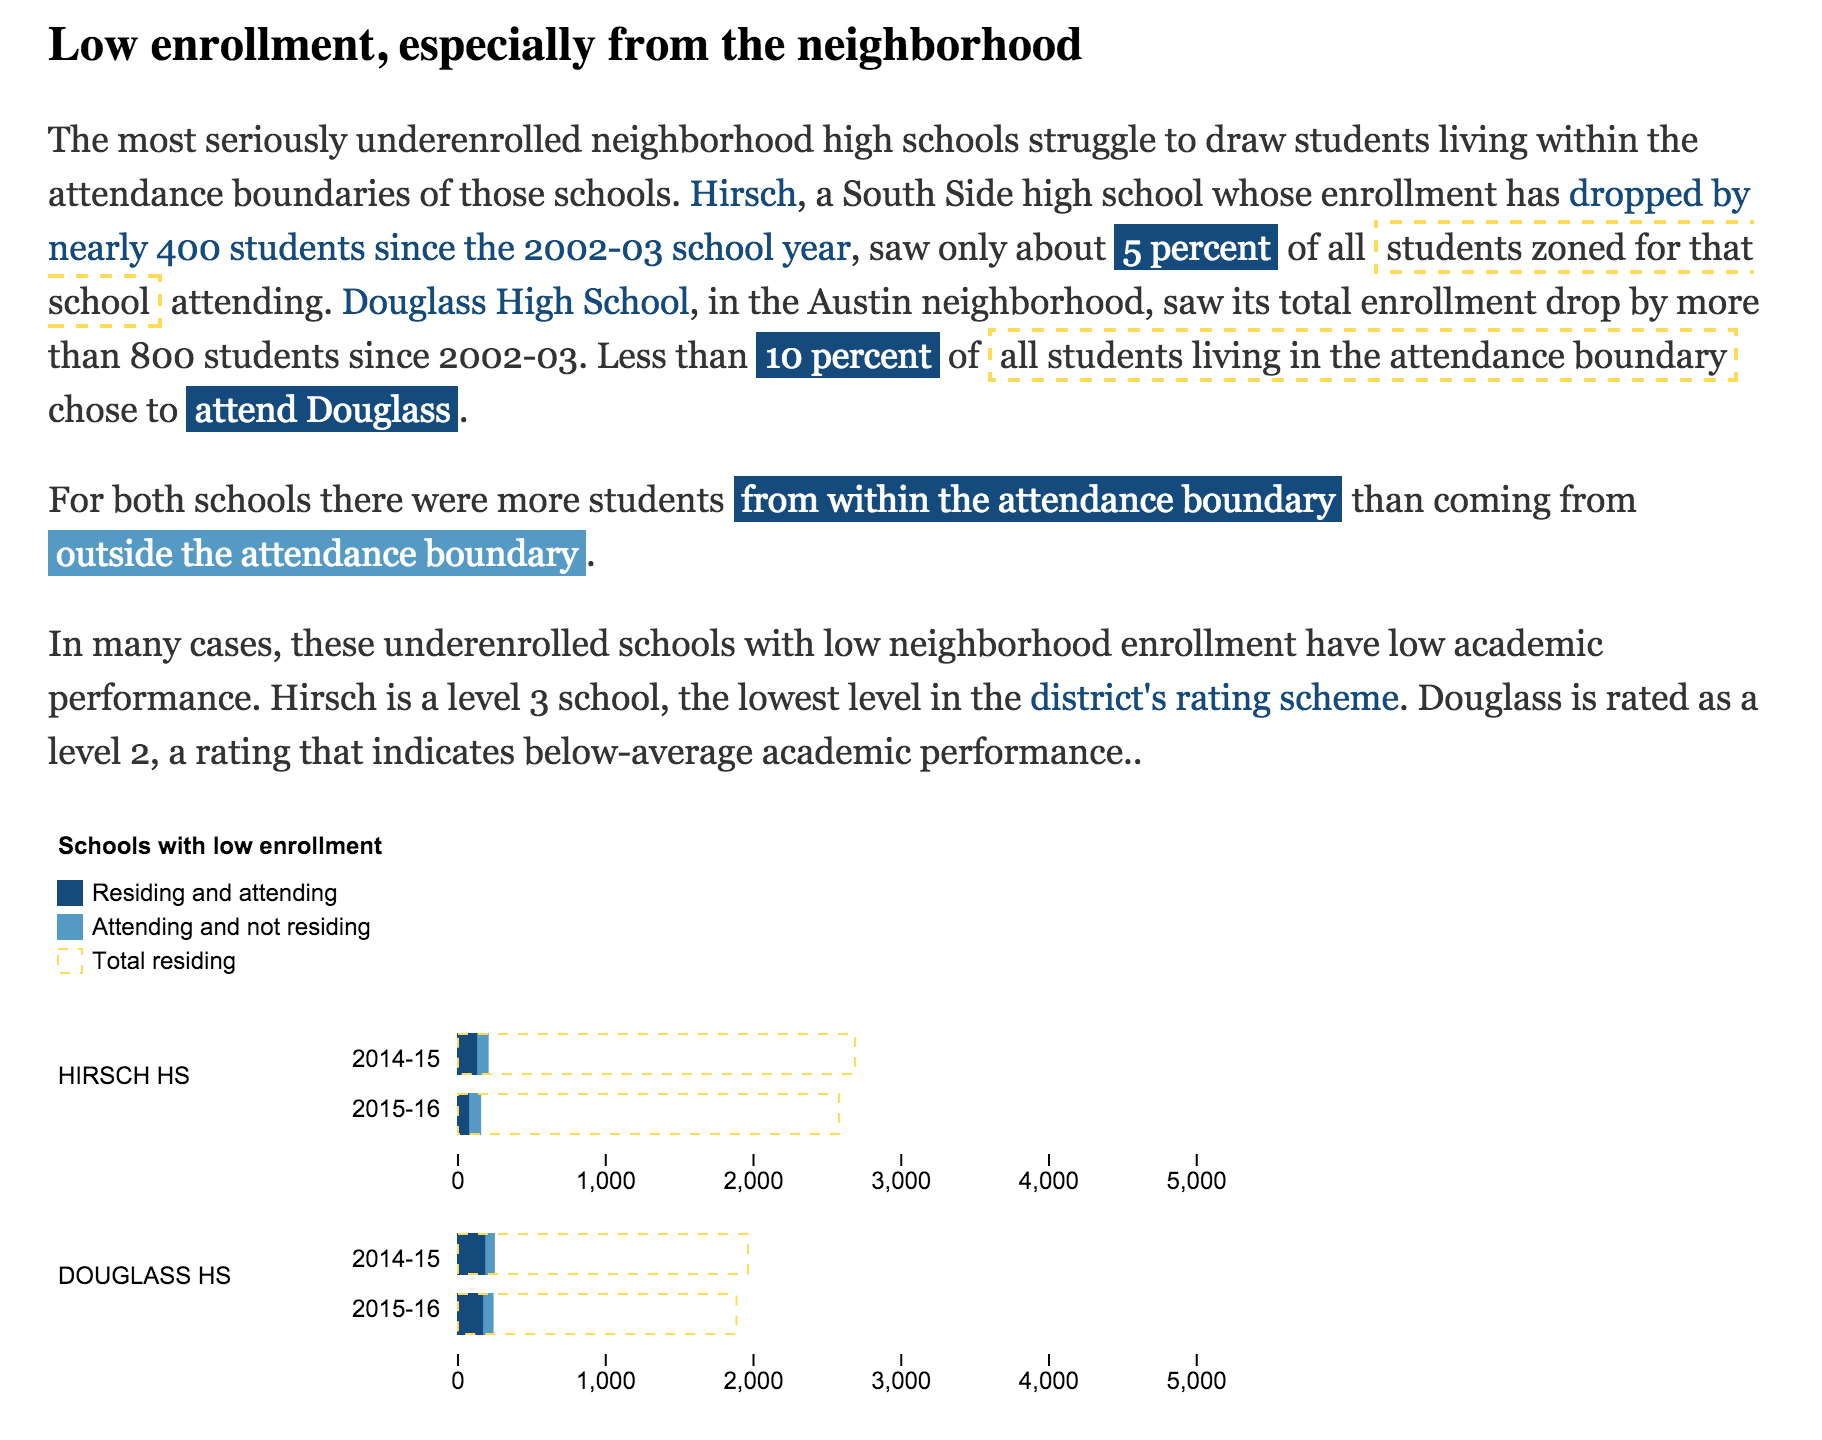 screenshot--chicago-school-neighborhood-enrollment